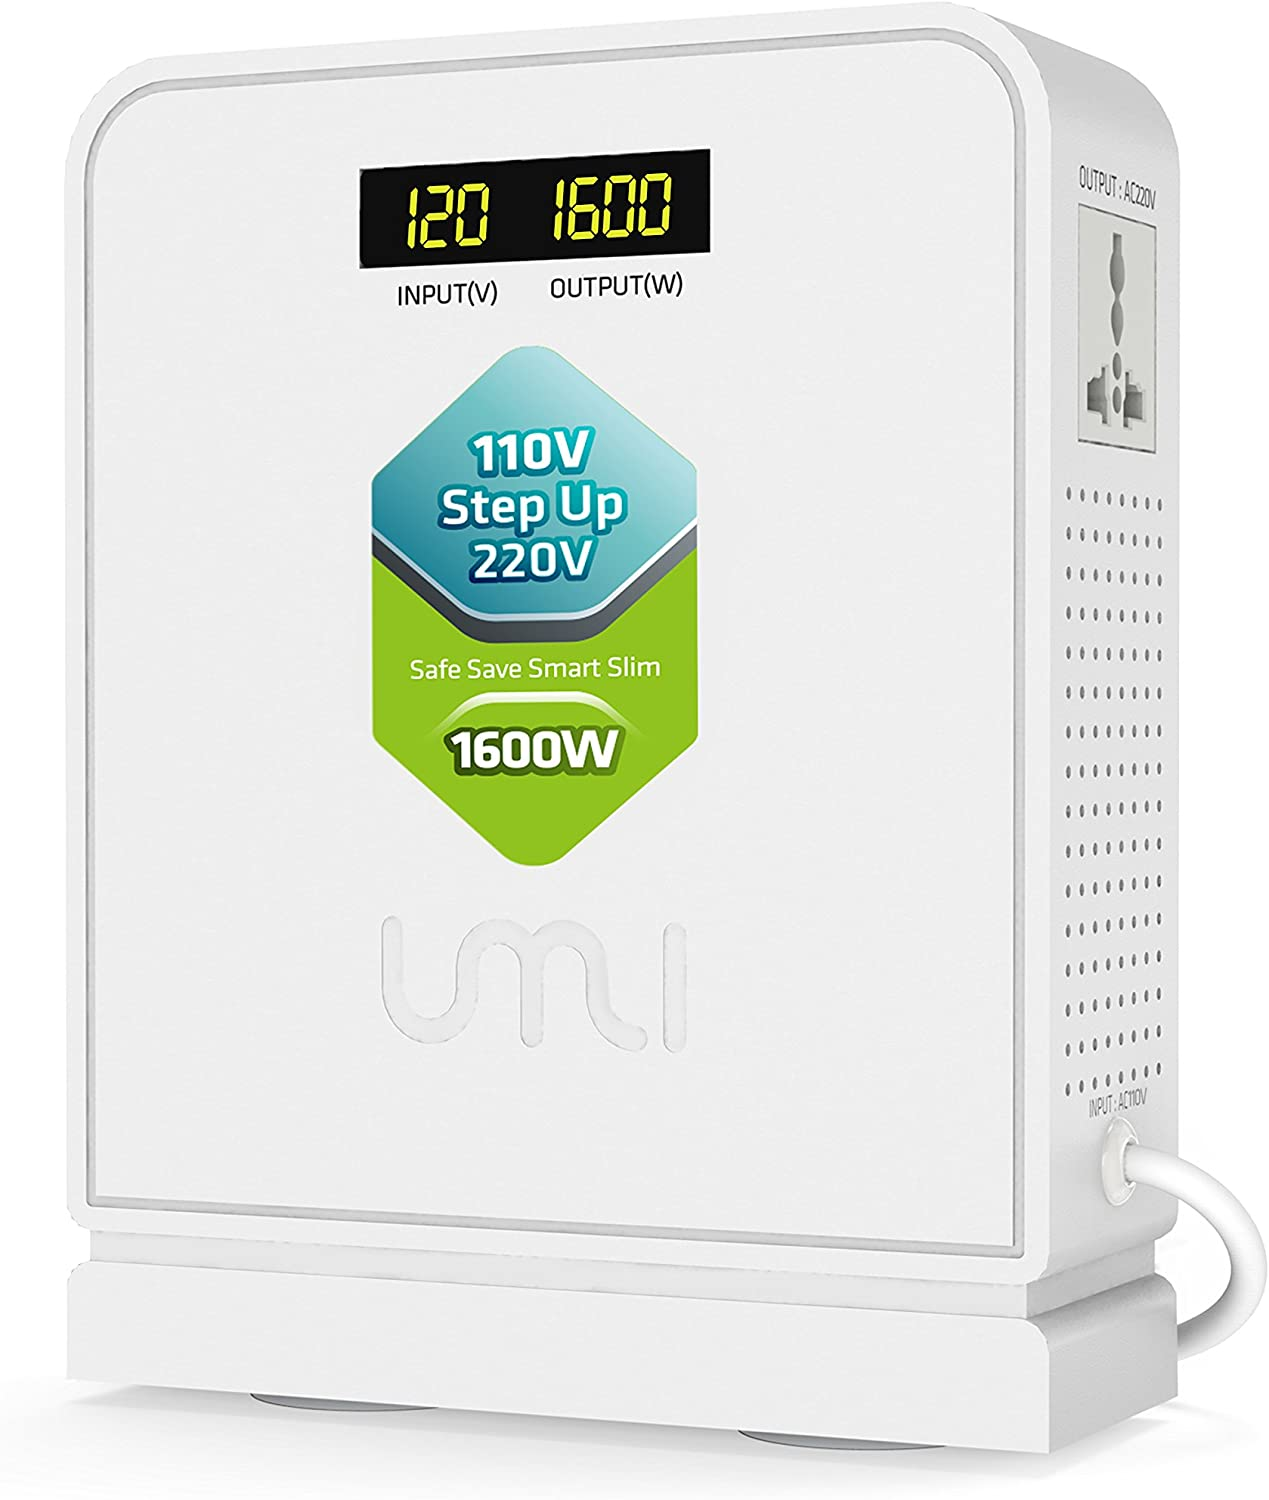 UMI 110V to 220V Step Up Voltage Converter 1600W for Euro and China Appliance with Toroidal Transformer, Dual displaying, Soft Start, Safety